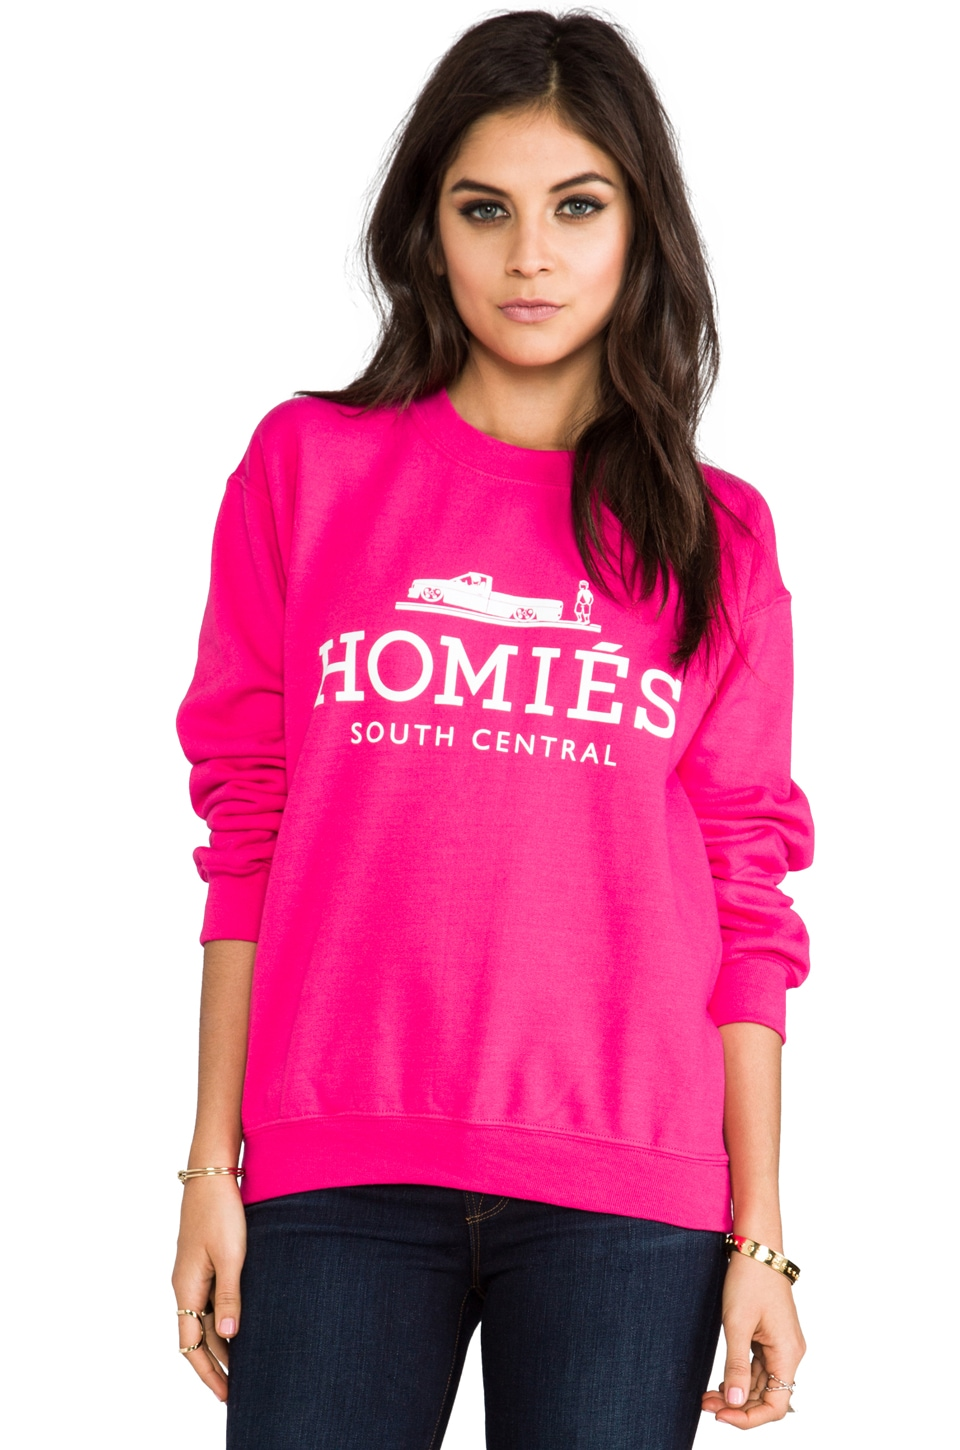 Brian Lichtenberg Homies Sweatshirt in Hot Pink/White